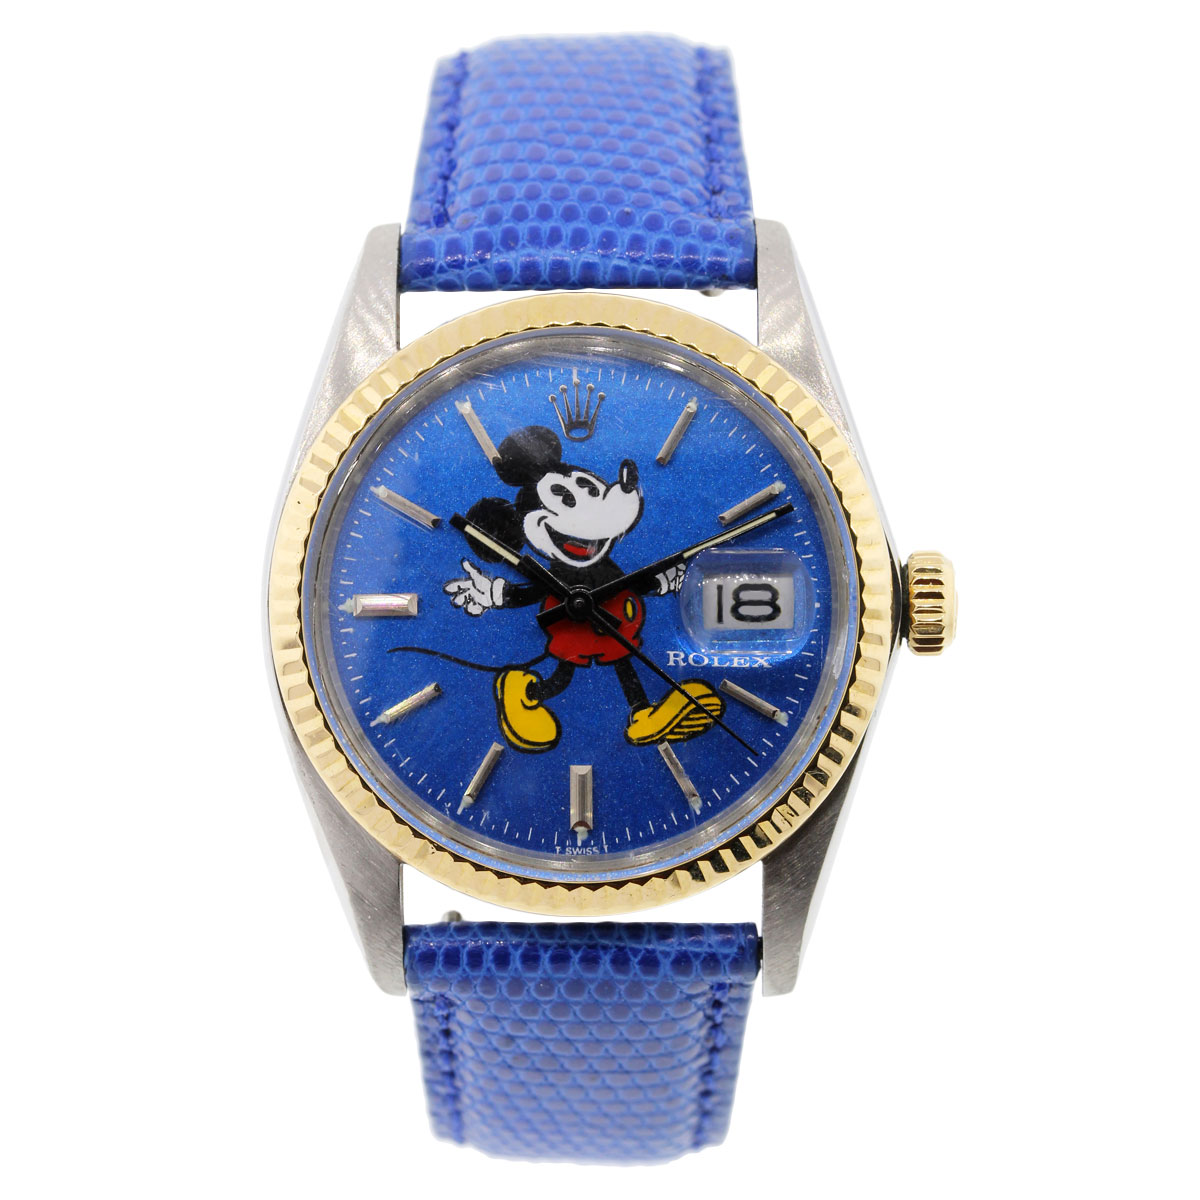 Rolex mickey mouse datejust